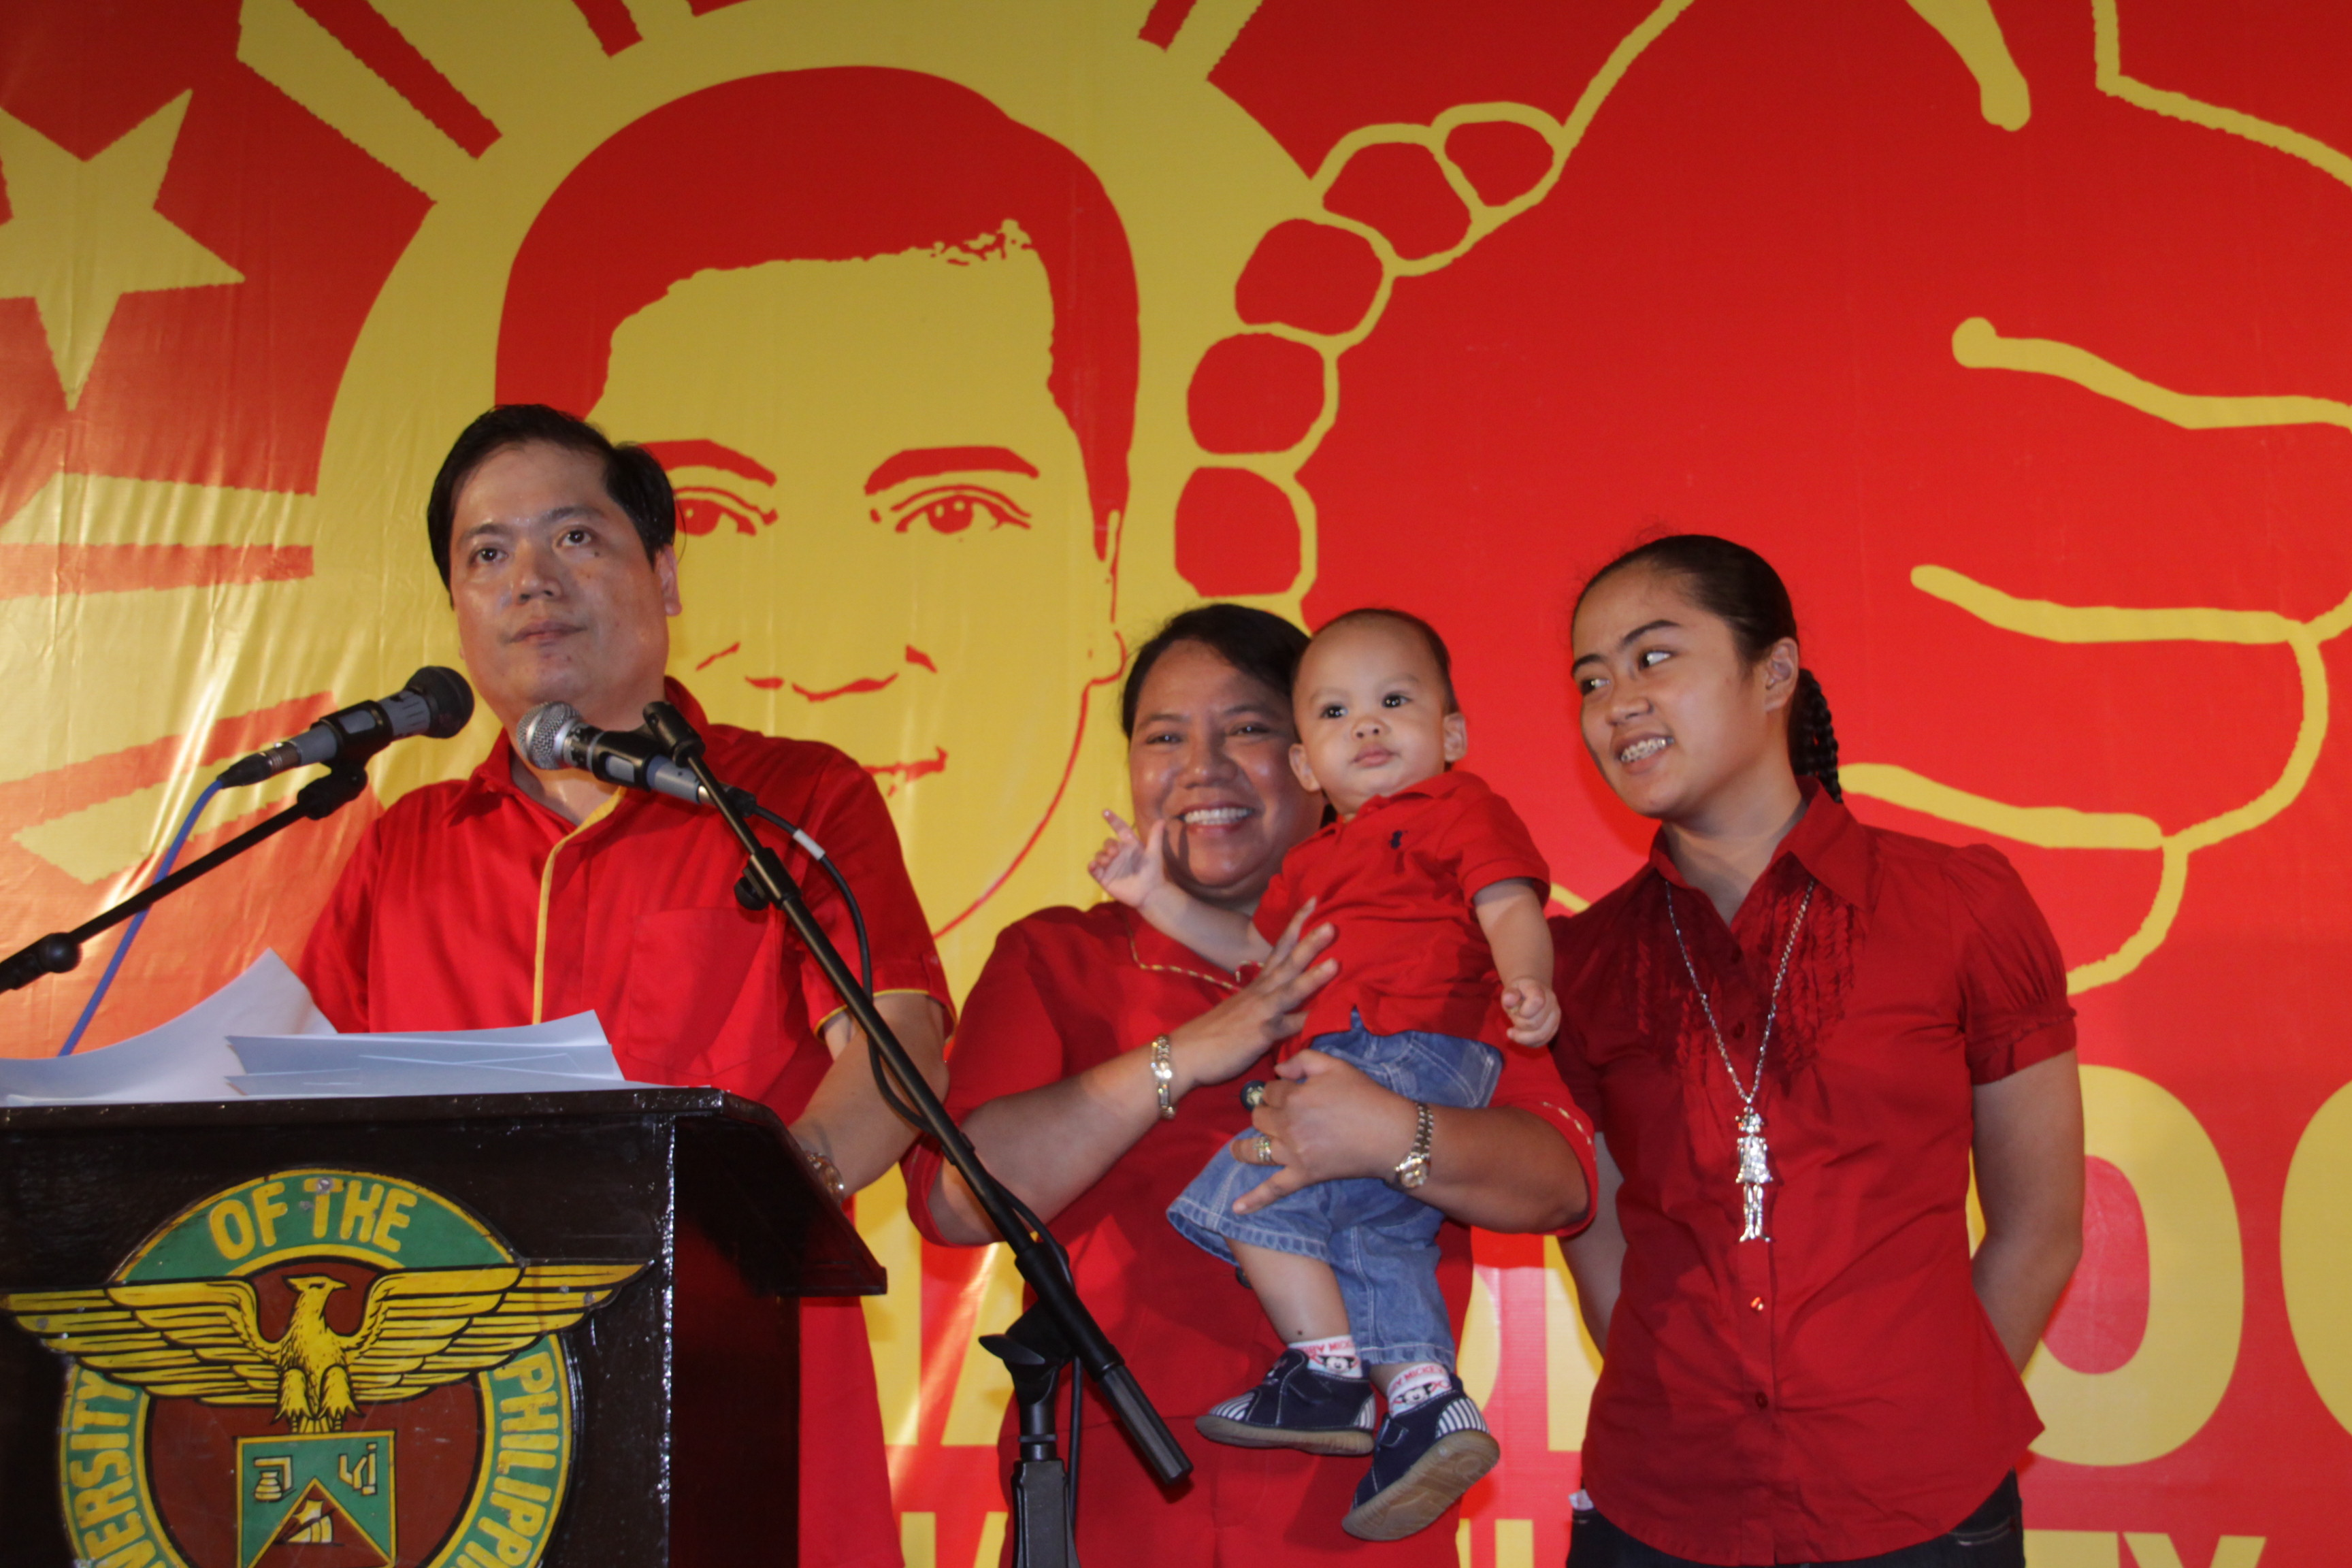 DECLARATION  Iloilo City Vice Mayor Jed Patrick Mabilog announces his candidacy for city mayor in the 2010 elections at the UP Visayas auditorium in Iloilo City Monday. He is joined by his wife Ma. Victoria, daughter Patricia and son Jonathan Felix Miguel. (Photo by Tara Yap)